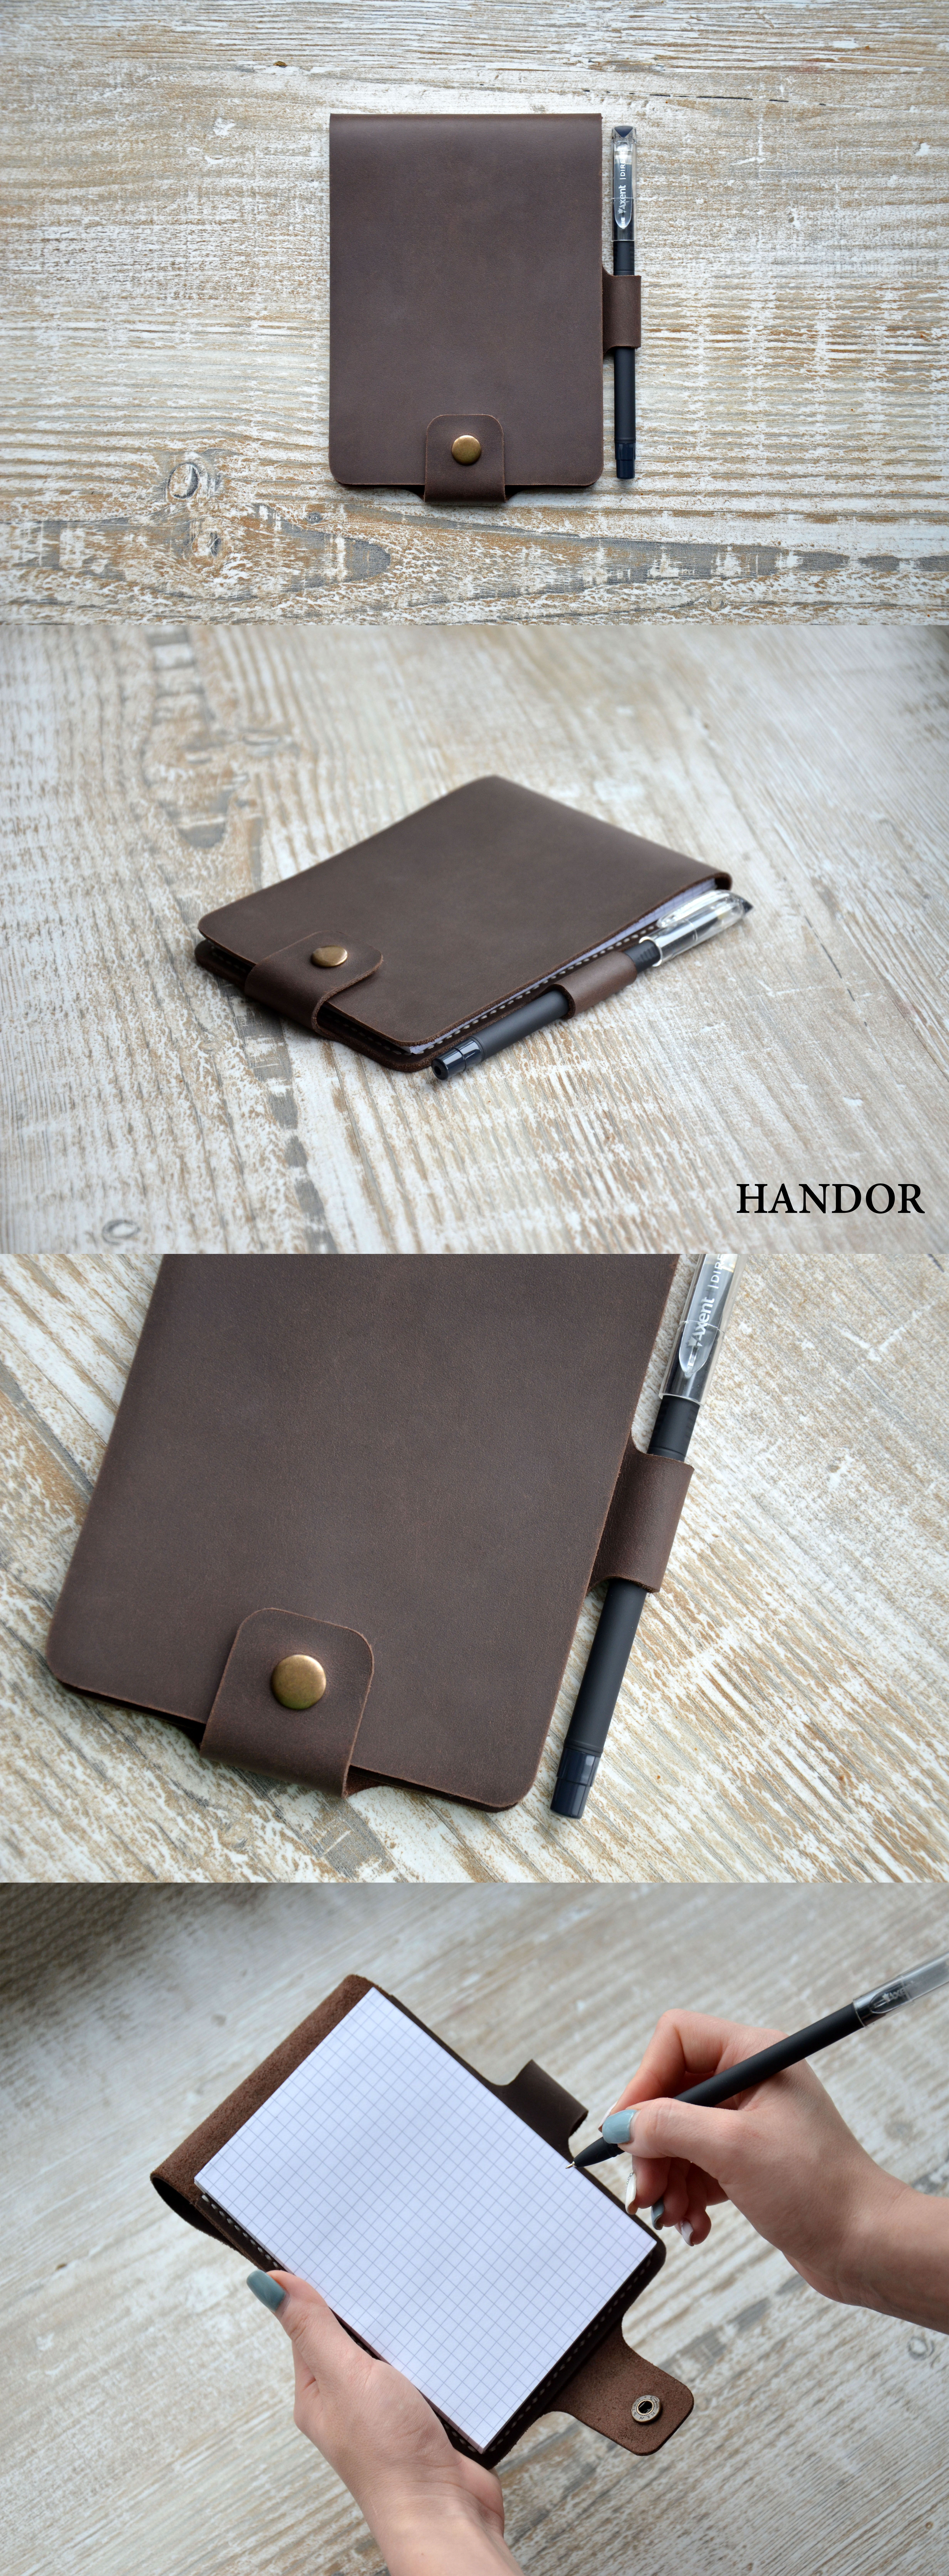 Personalized Leather Notepad Cover With holder for pen, 50 pages, 100 % Handmade gift. Perfect personalized Monogram gift for your husband, wife, family members or dear friend in your life as well. Unique Birthday gift, Anniversary, Wedding, Shower, graduation gift, mens custom!